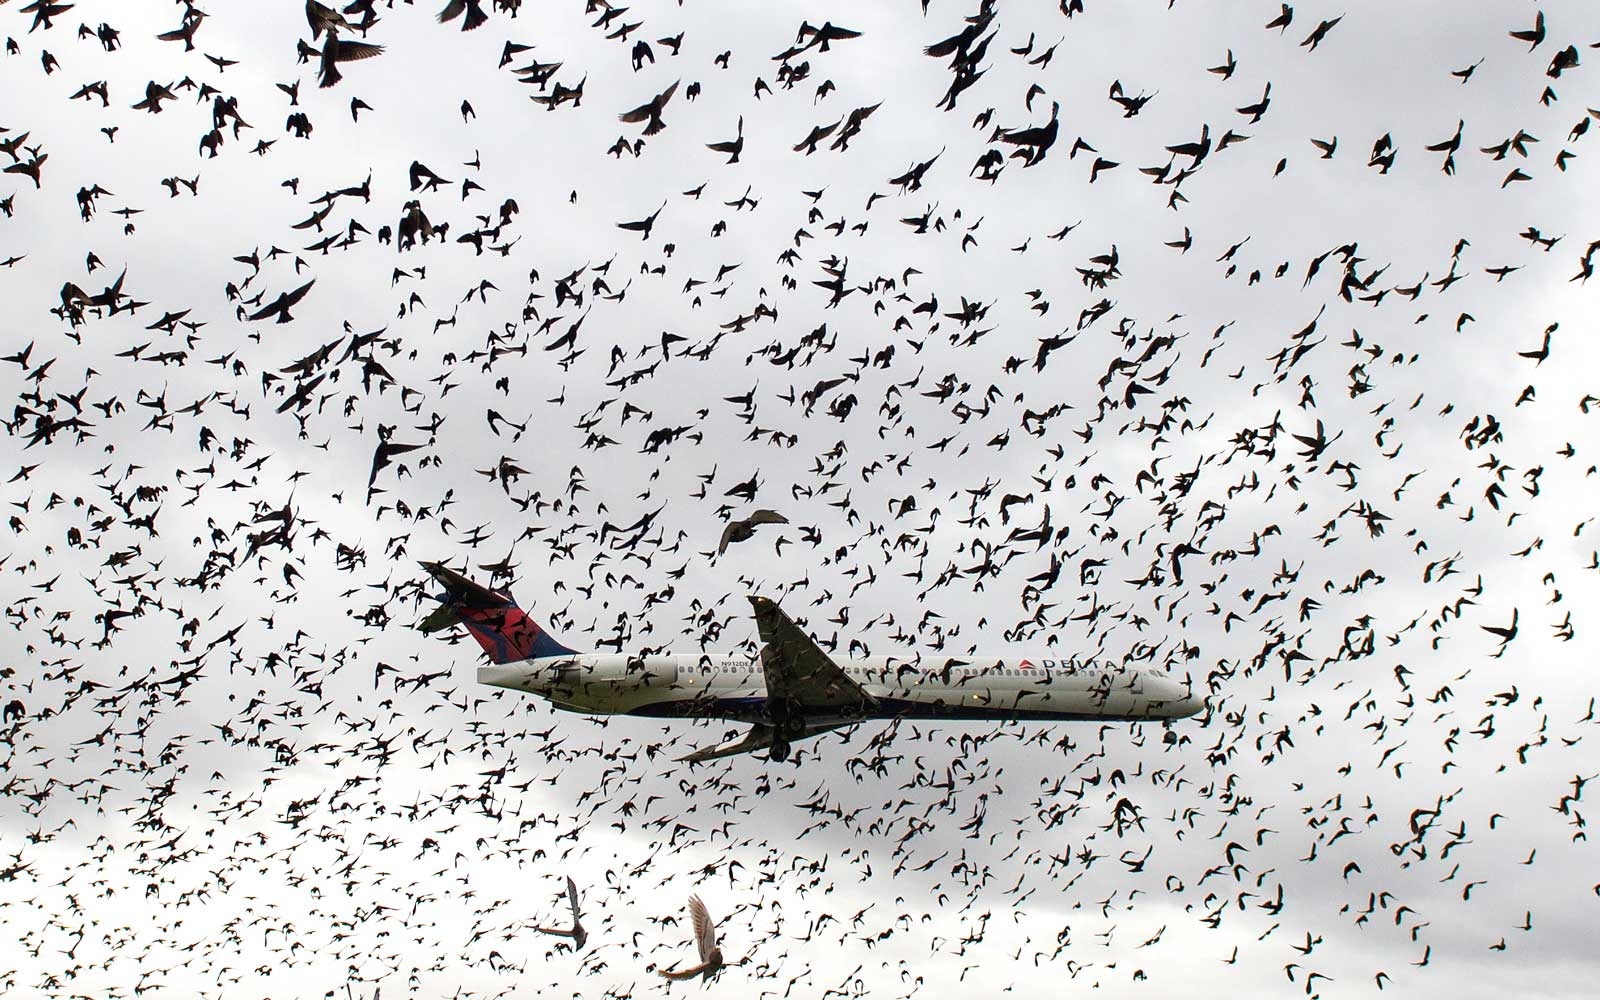 Birds Can Delay Flights